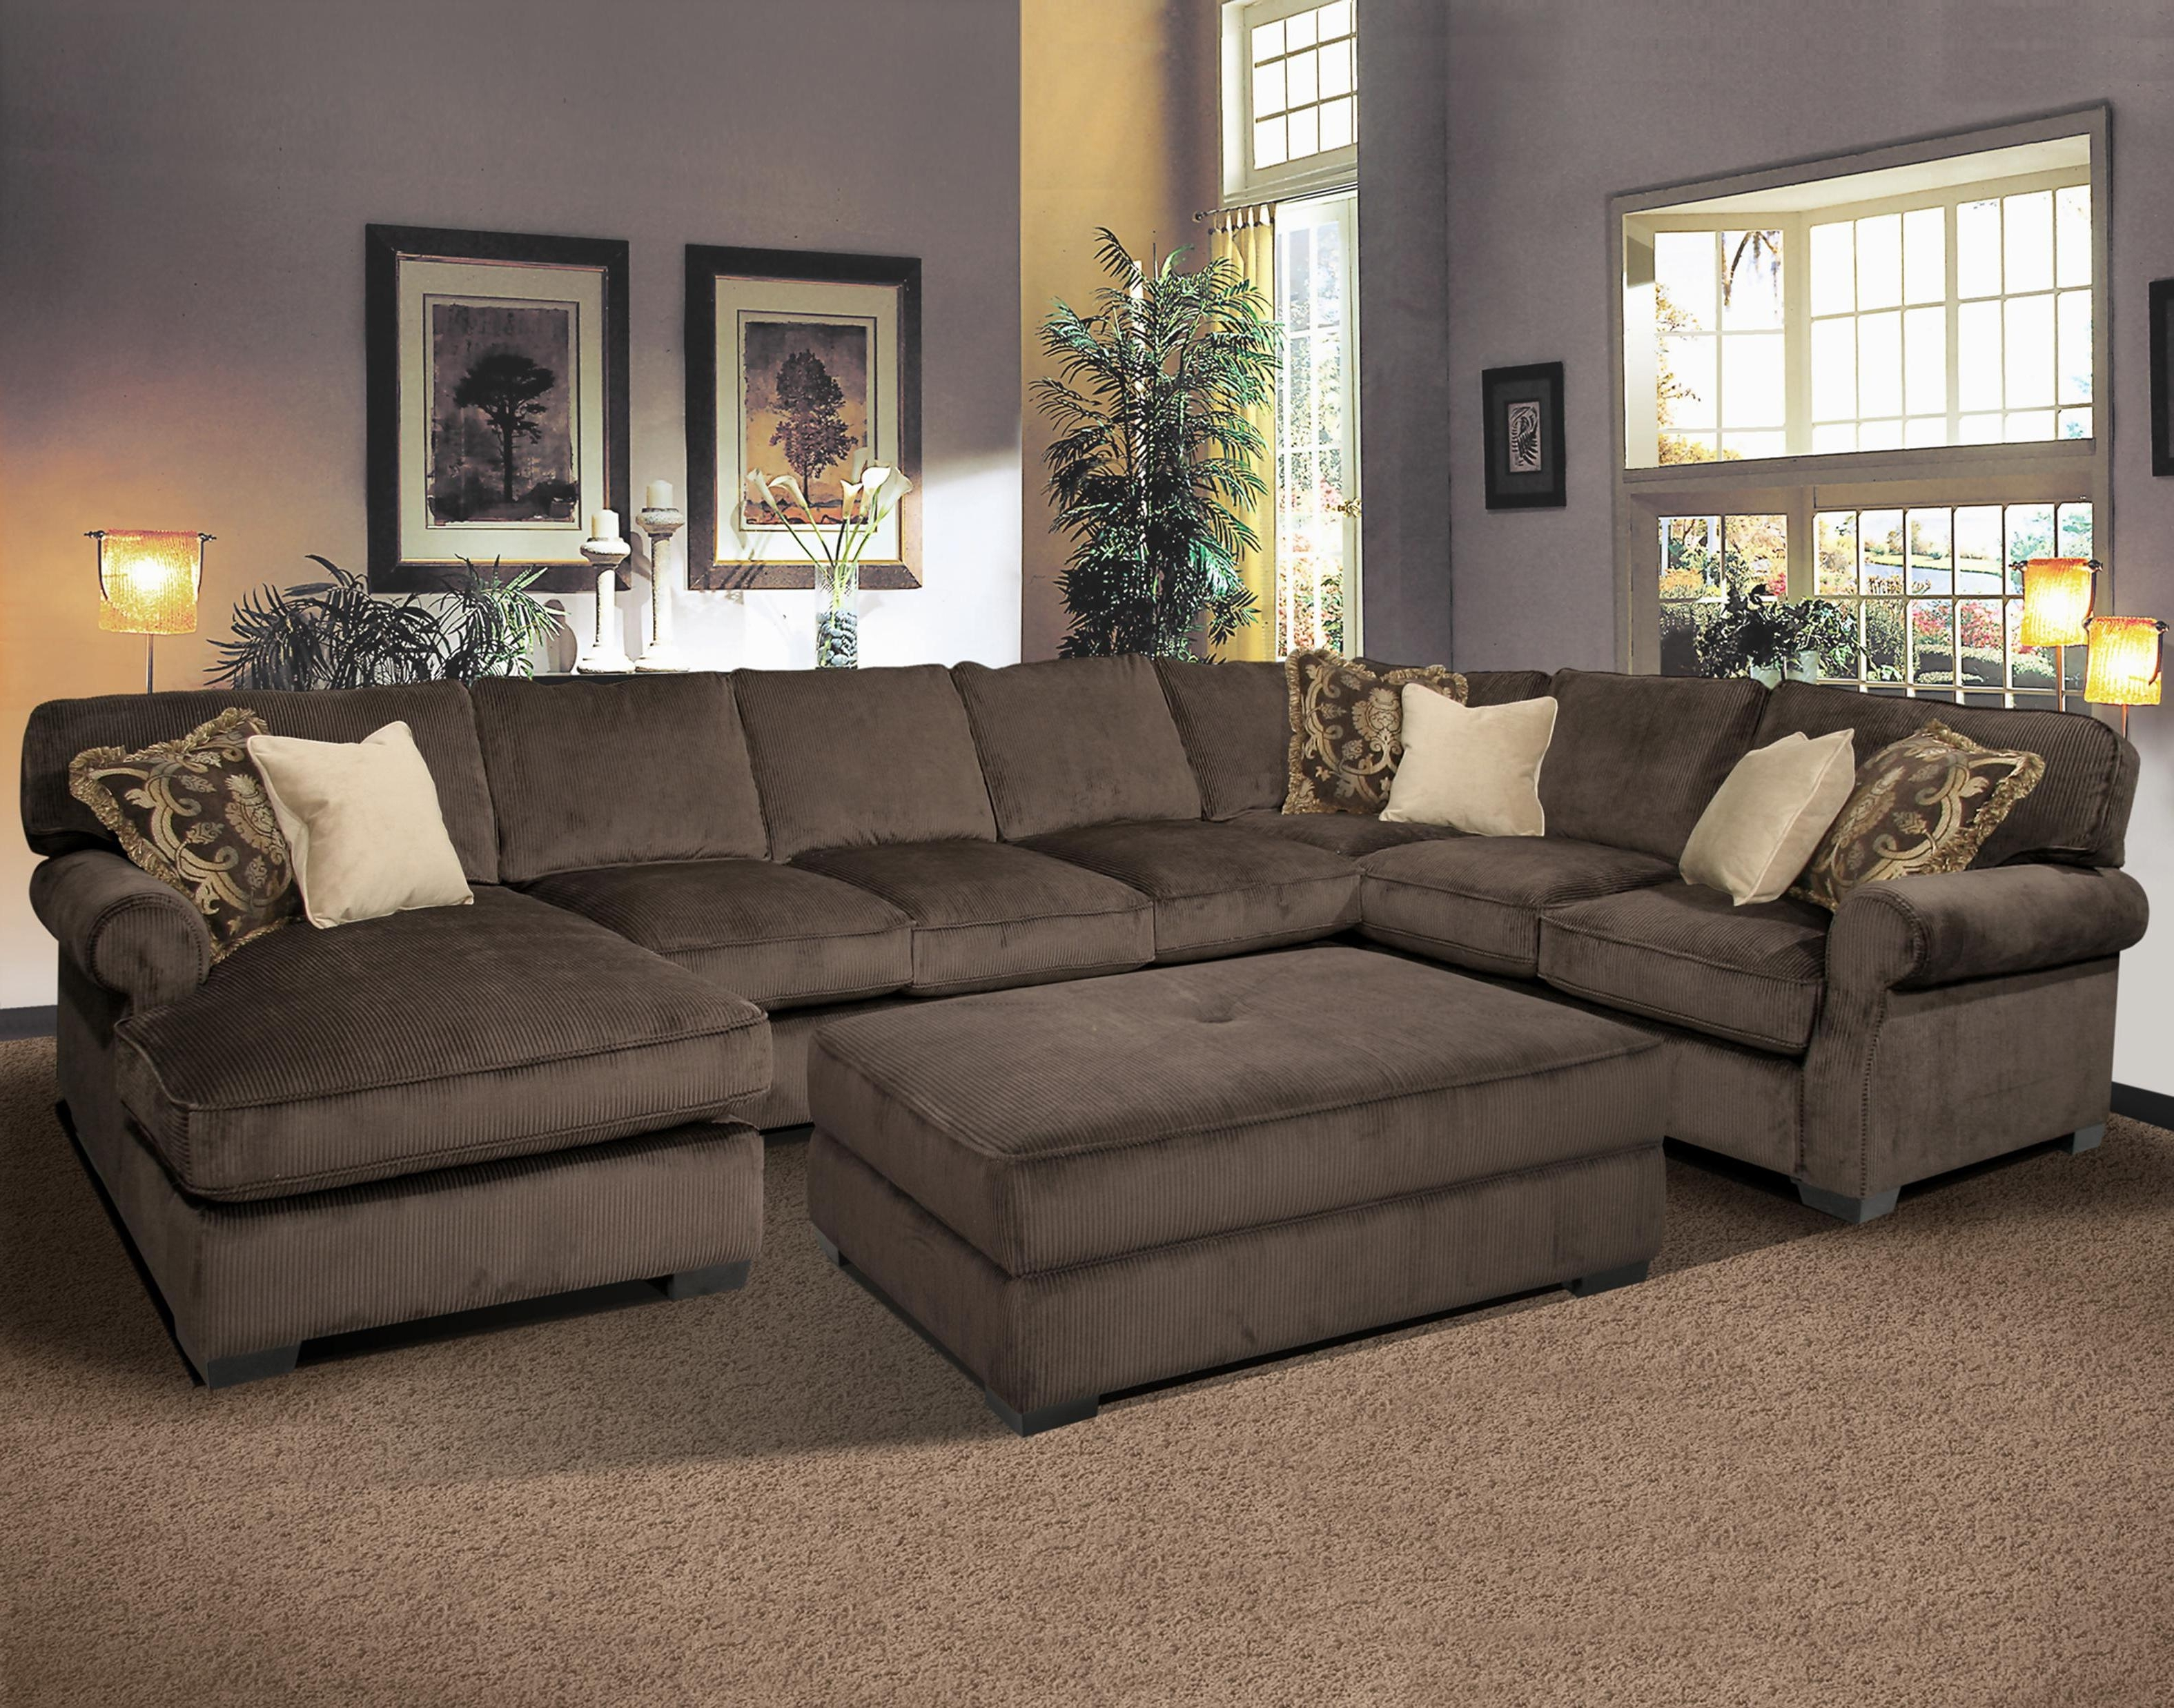 Furniture : Sectional Sofa With Recliner And Ottoman Grand Island Inside Most Current Grand Furniture Sectional Sofas (Gallery 1 of 20)